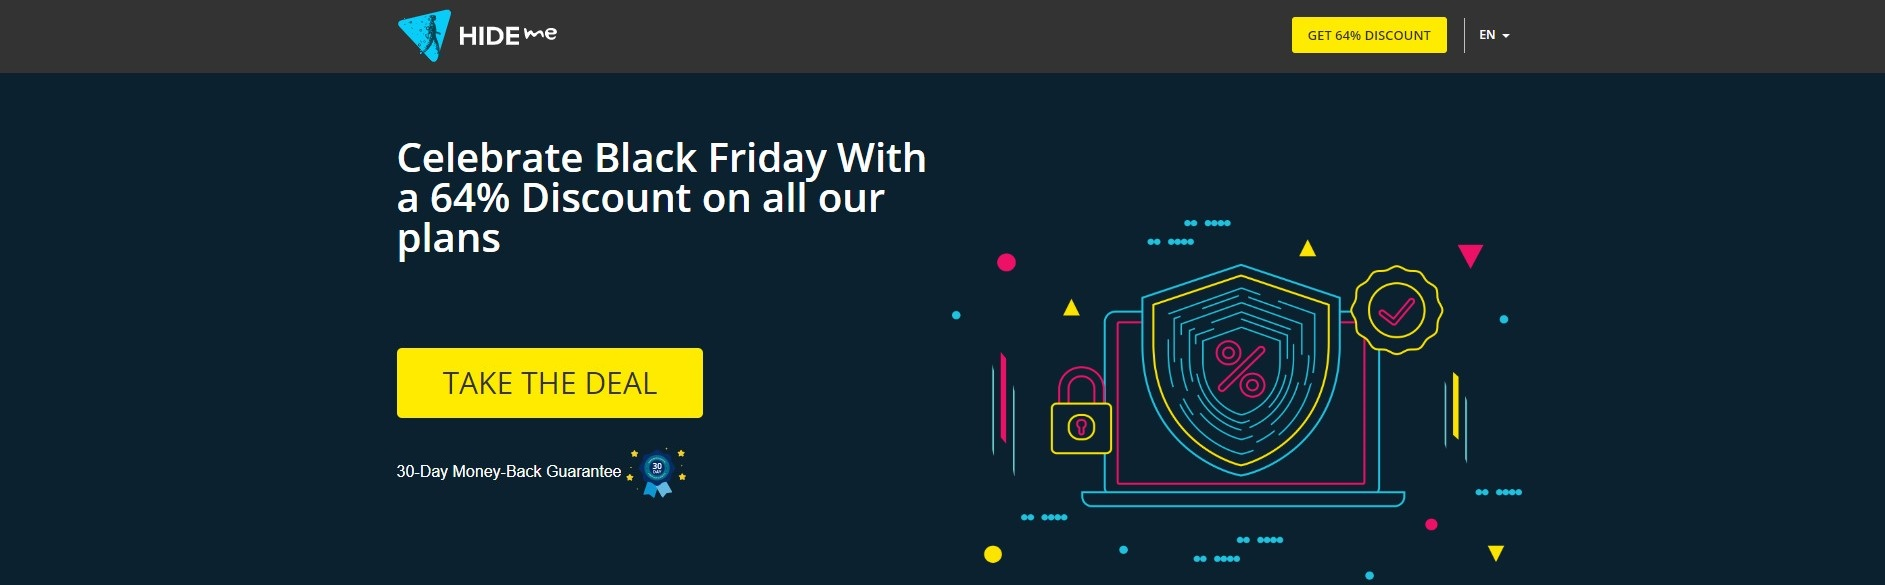 hide.me Black Friday Cyber Monday deal